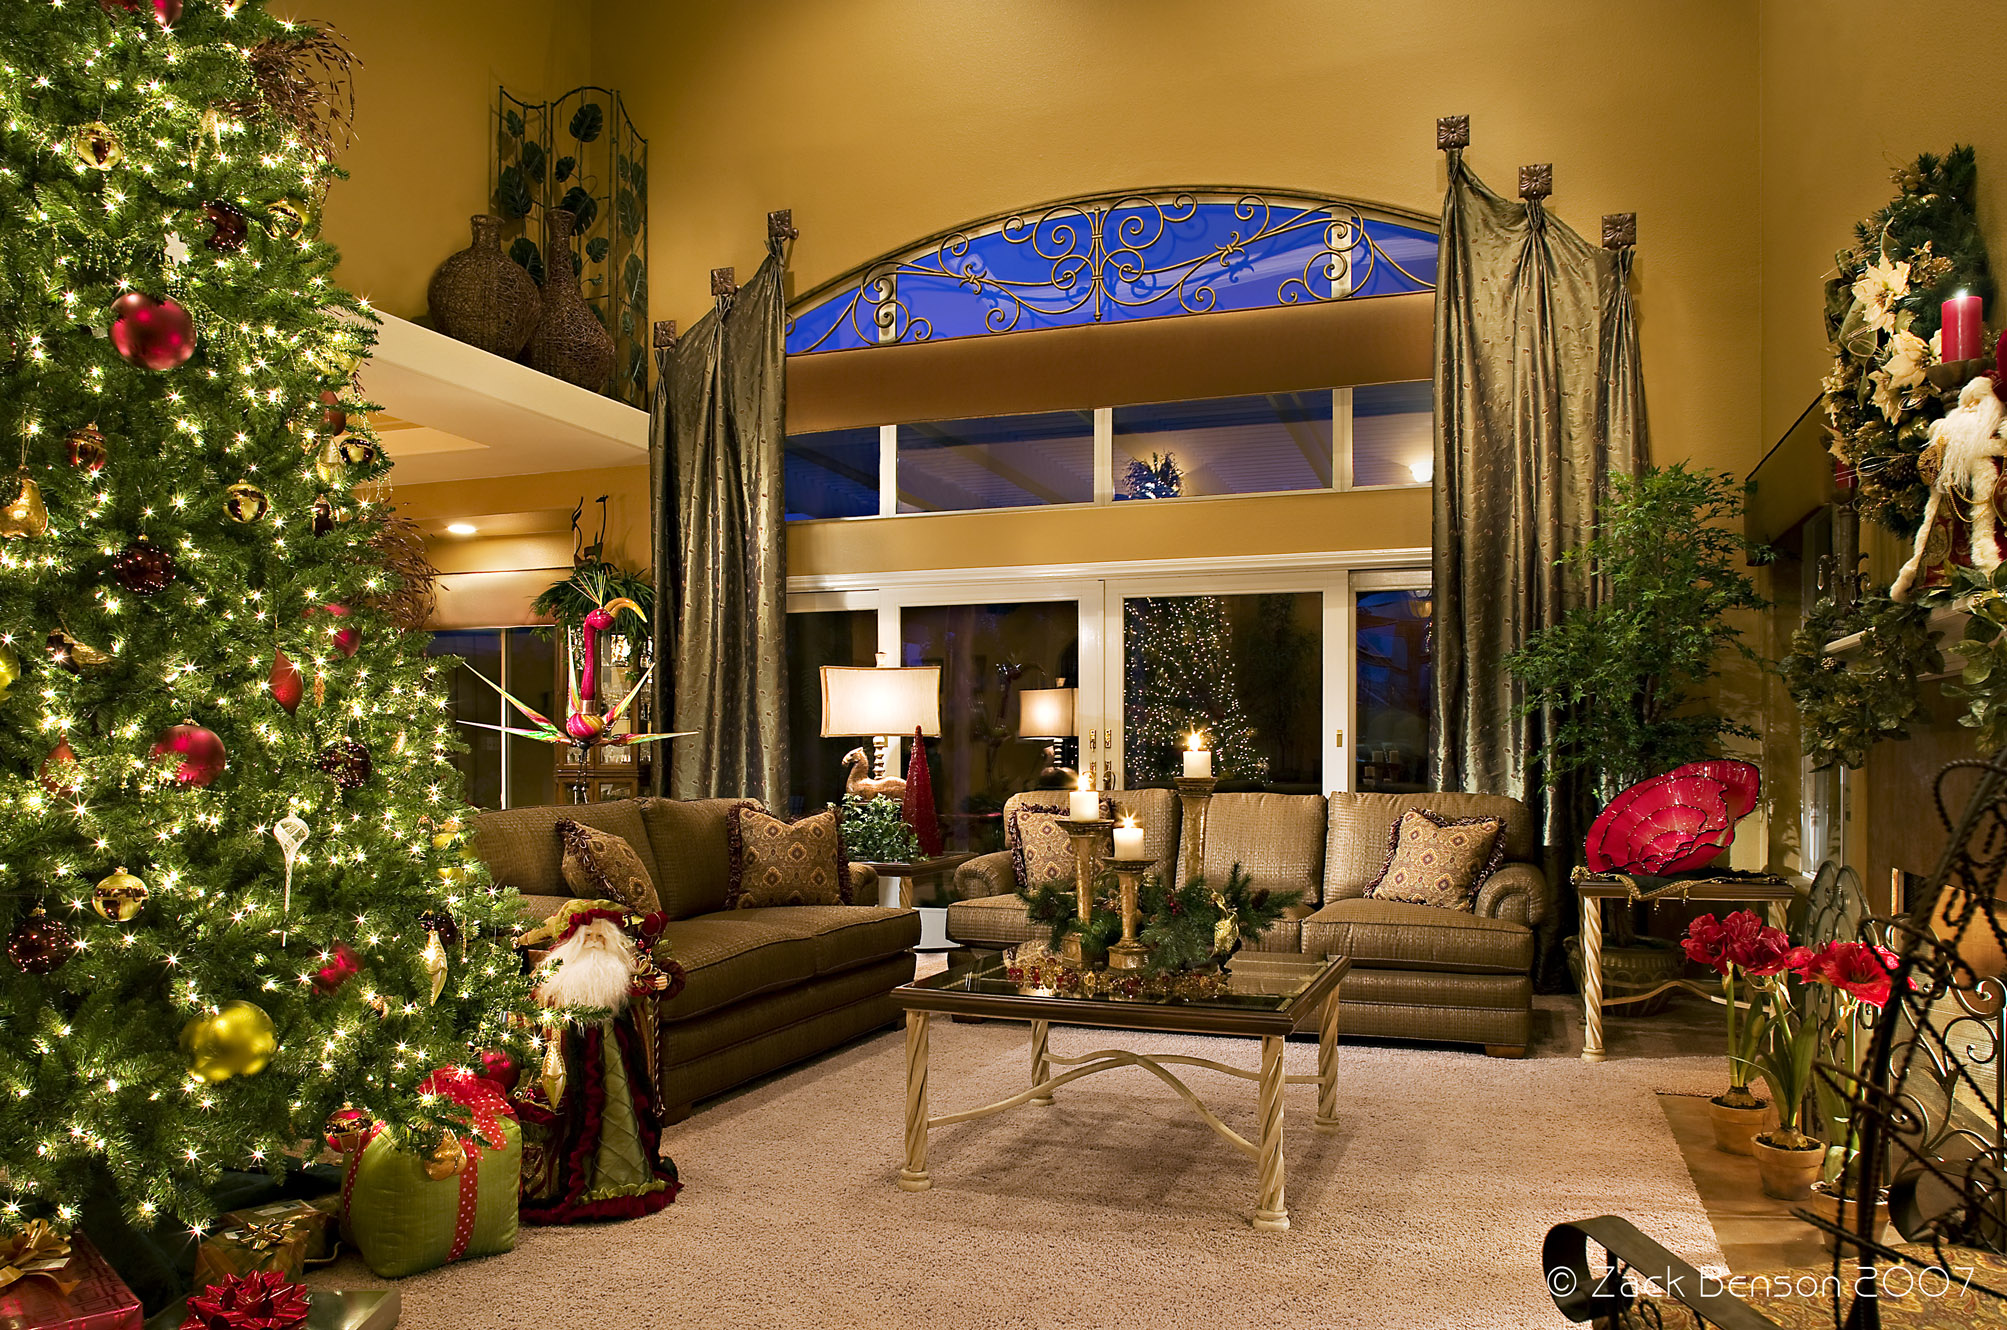 10 tips for holiday decorating decorating den interiors Christmas decorations interior design